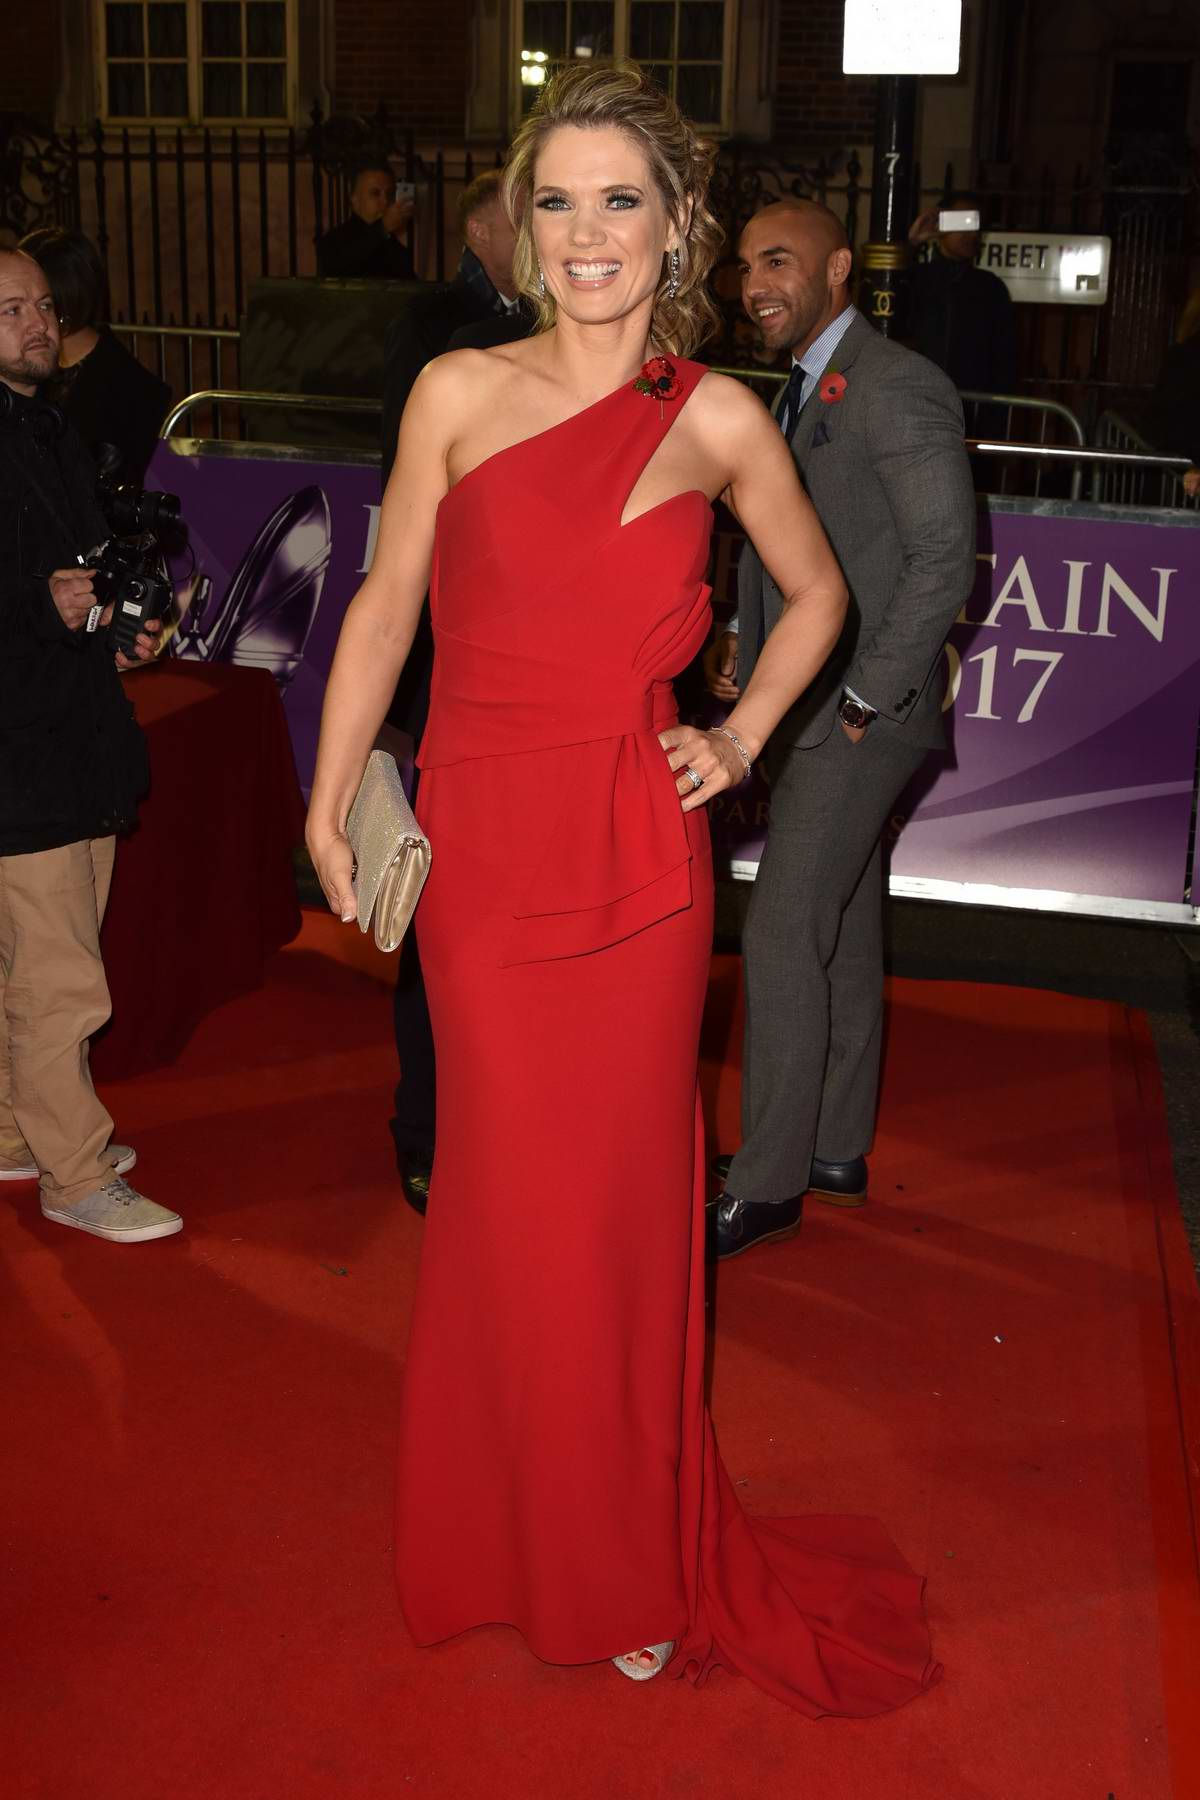 Charlotte Hawkins at the Pride of Britain Awards held at the Grosvenor House in London